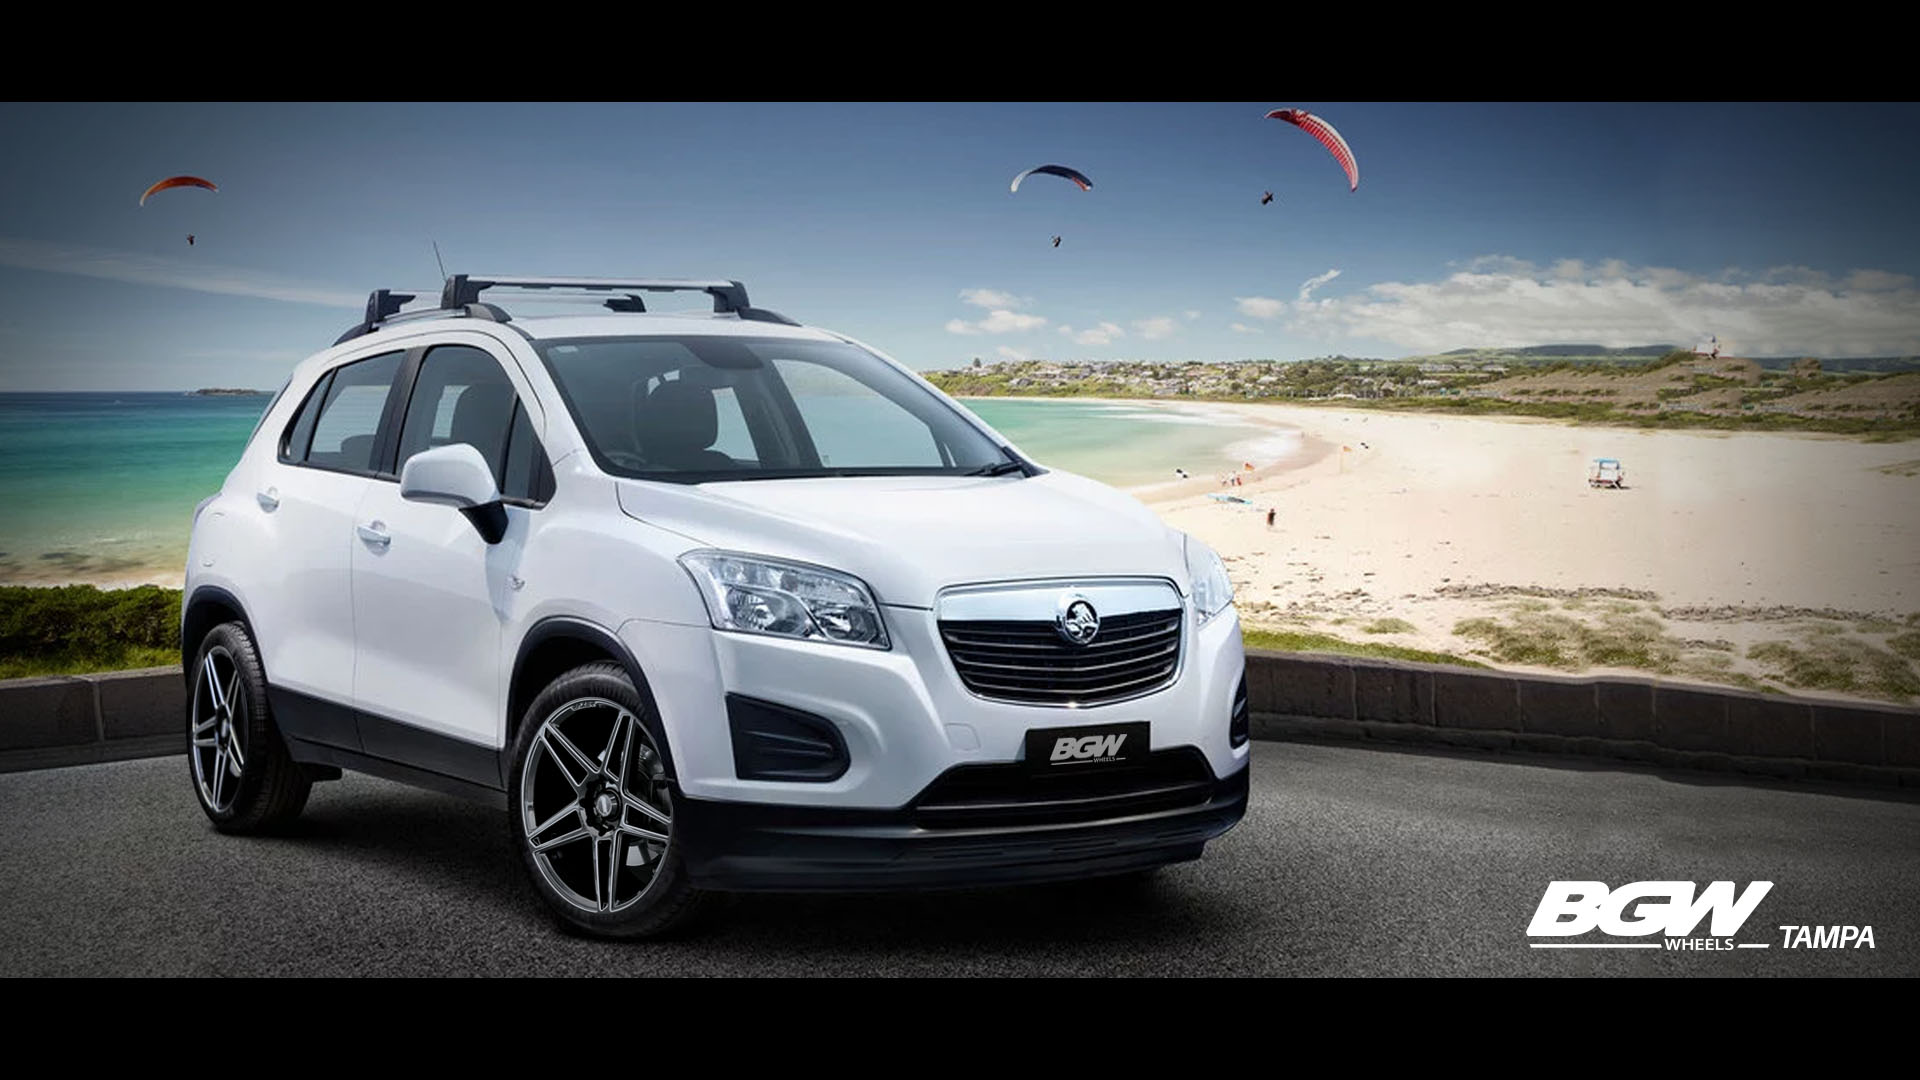 Holden Trax on BGW Tampa